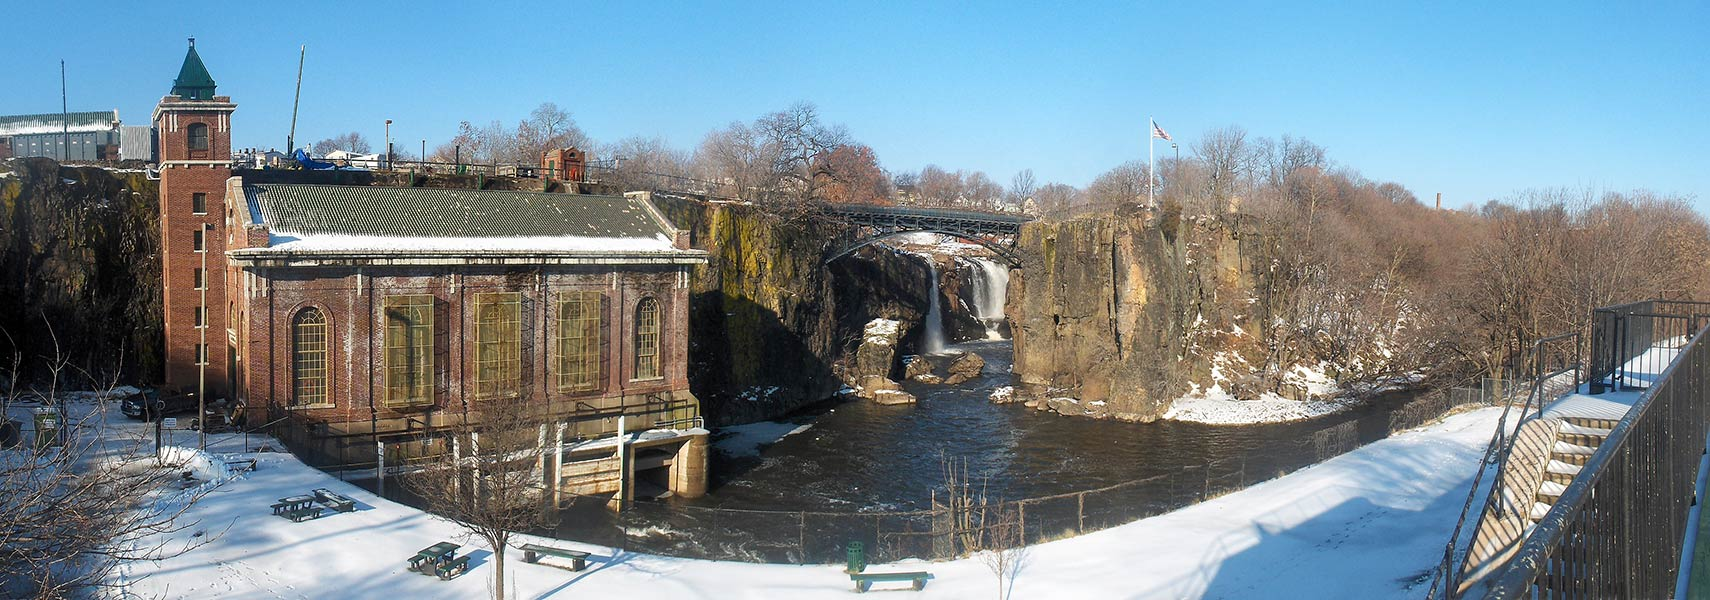 Great Falls of the Passaic River in Paterson, New Jersey